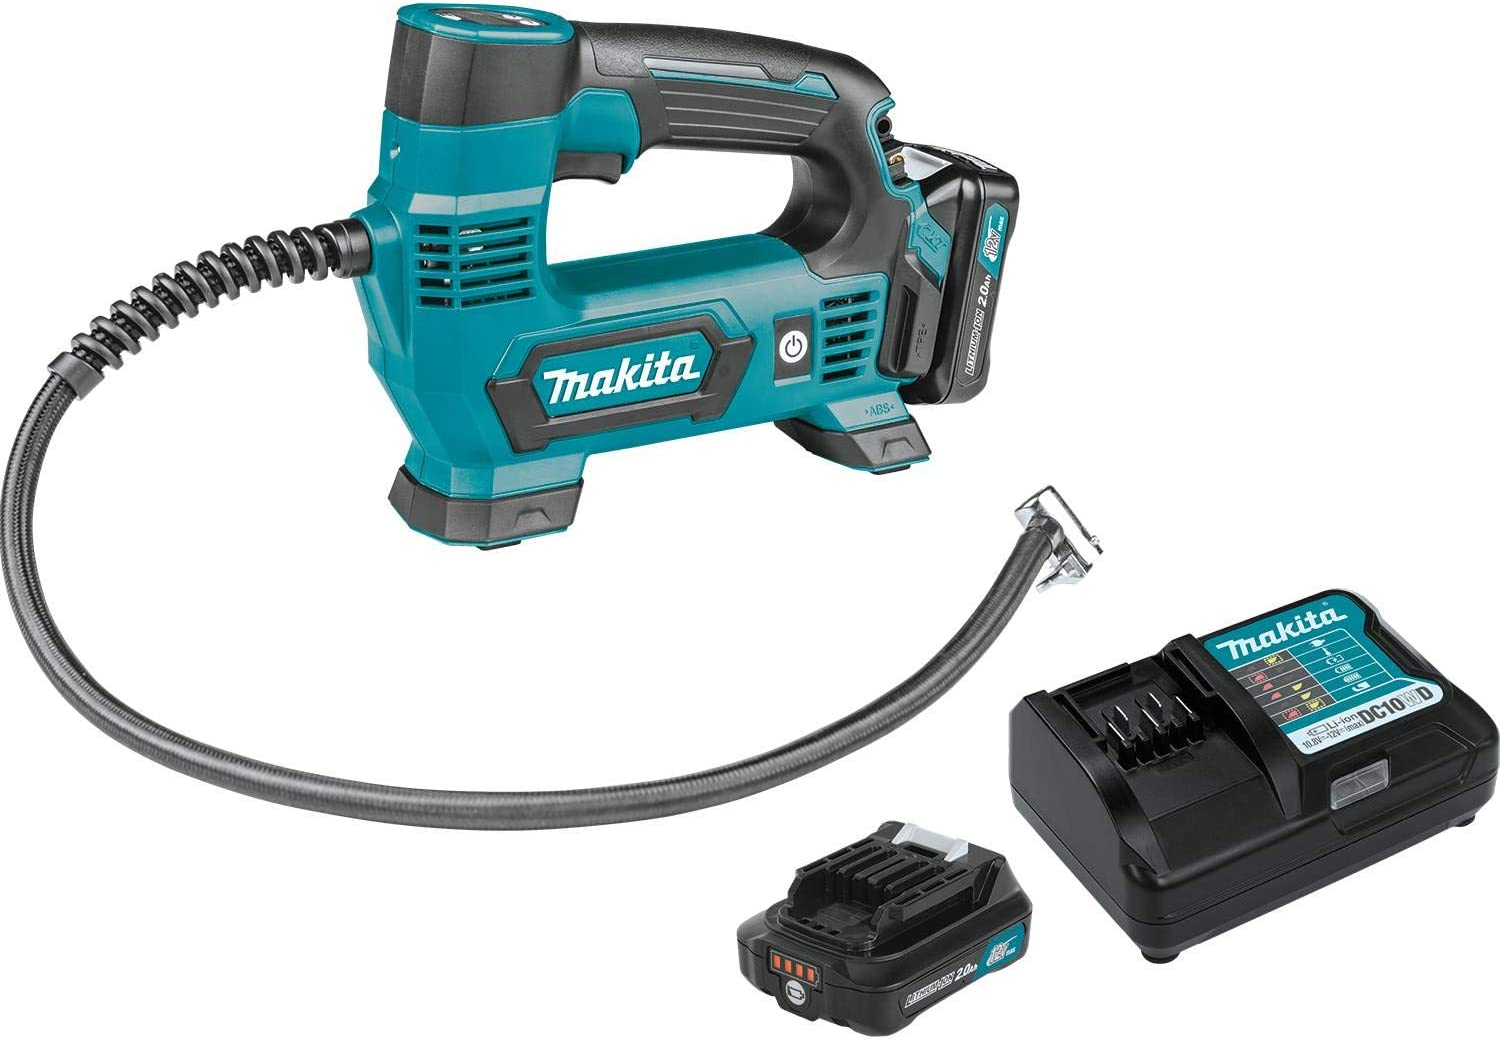 Makita MP100DWRX1 12V Max CXT Lithium-Ion Cordless Inflator Kit 2.0Ah